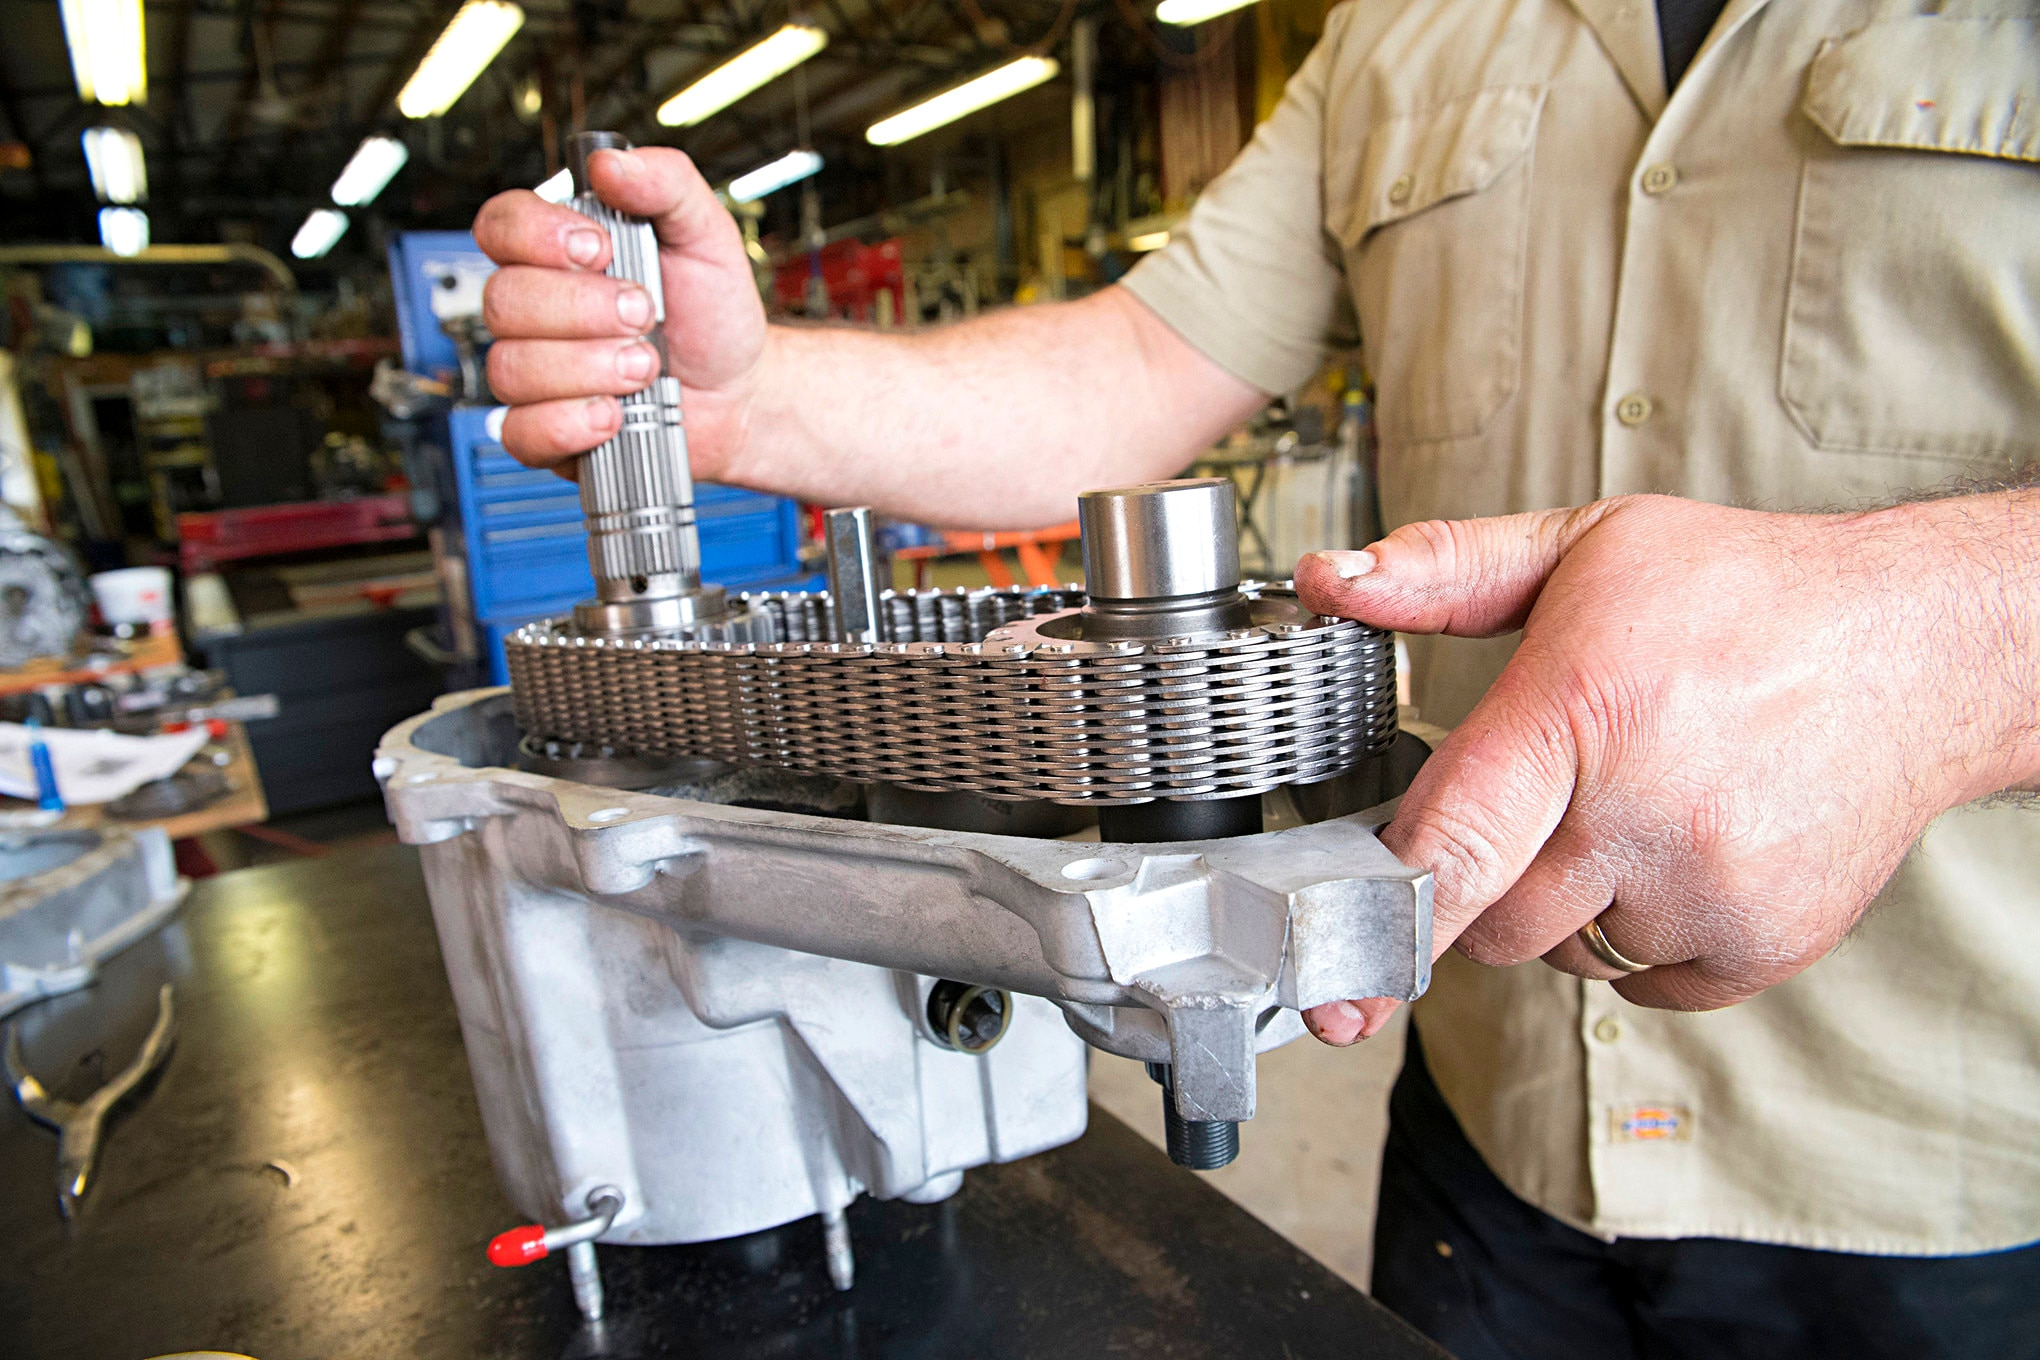 Replace the gears on the new shafts, install the new wide-chain, and then drop both shaft assemblies back into the case as one unit. The heavy duty chain is a 1/2-inch wider than the OEM version.